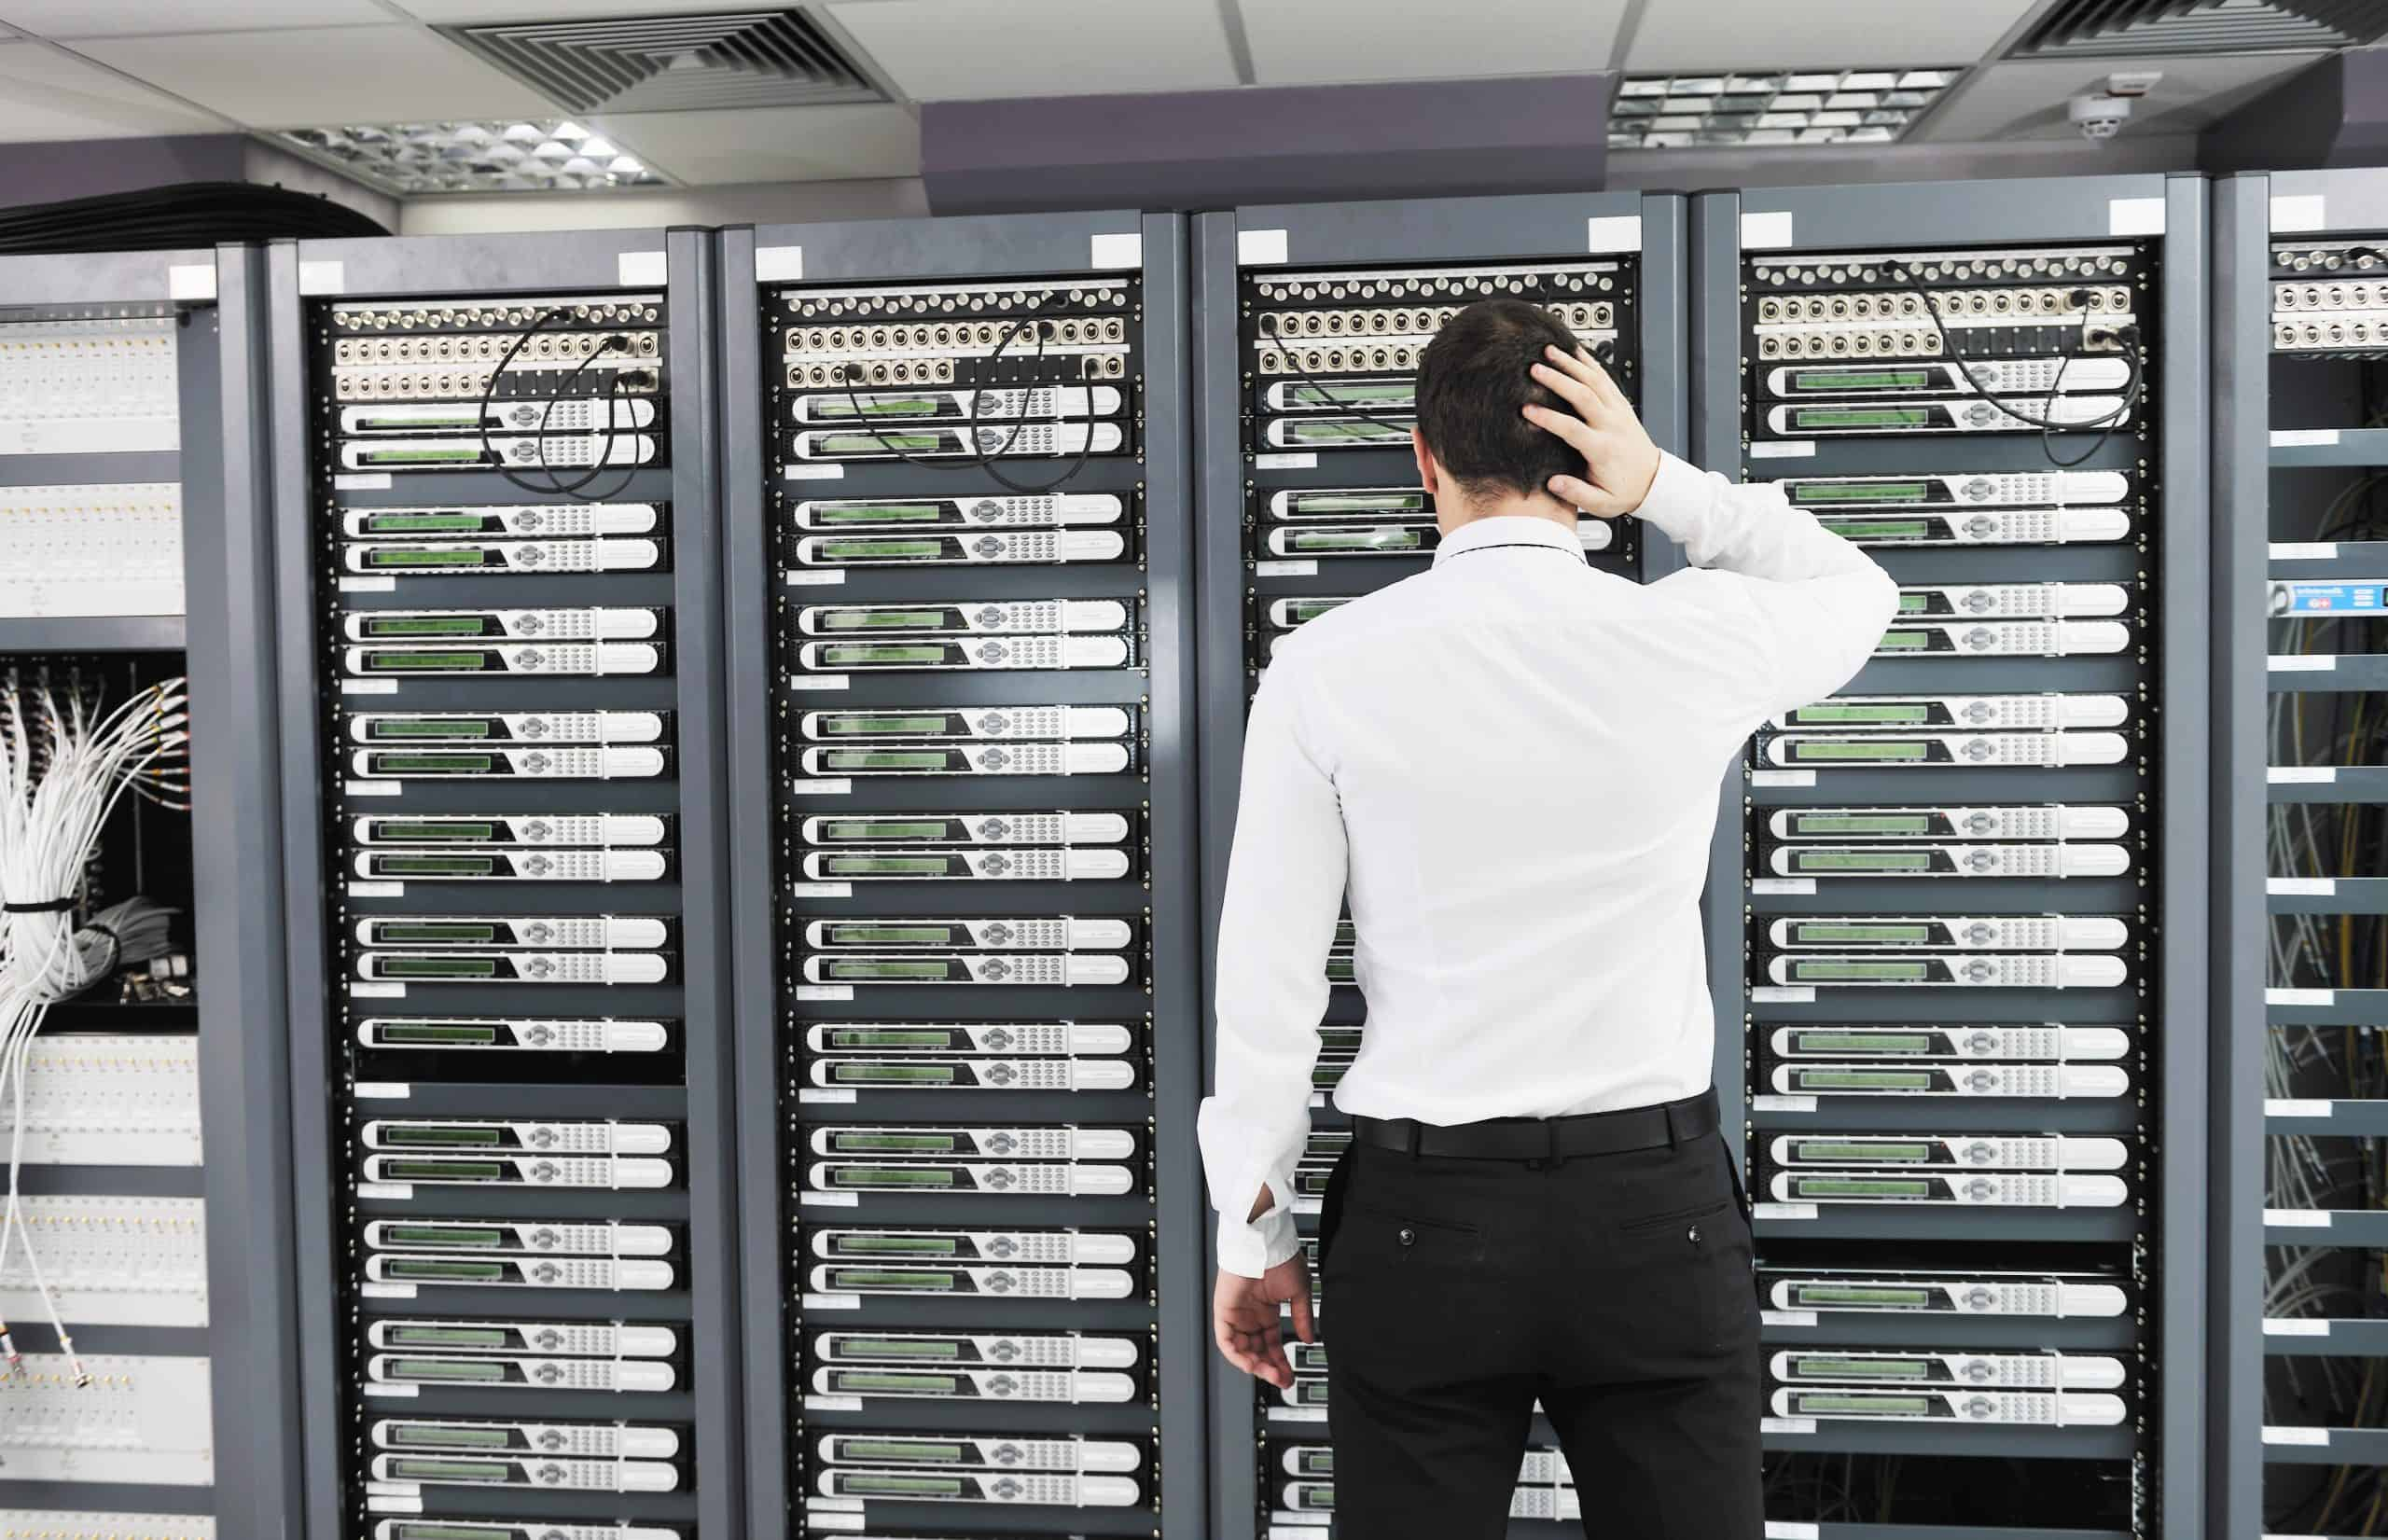 Man holding head in front of server